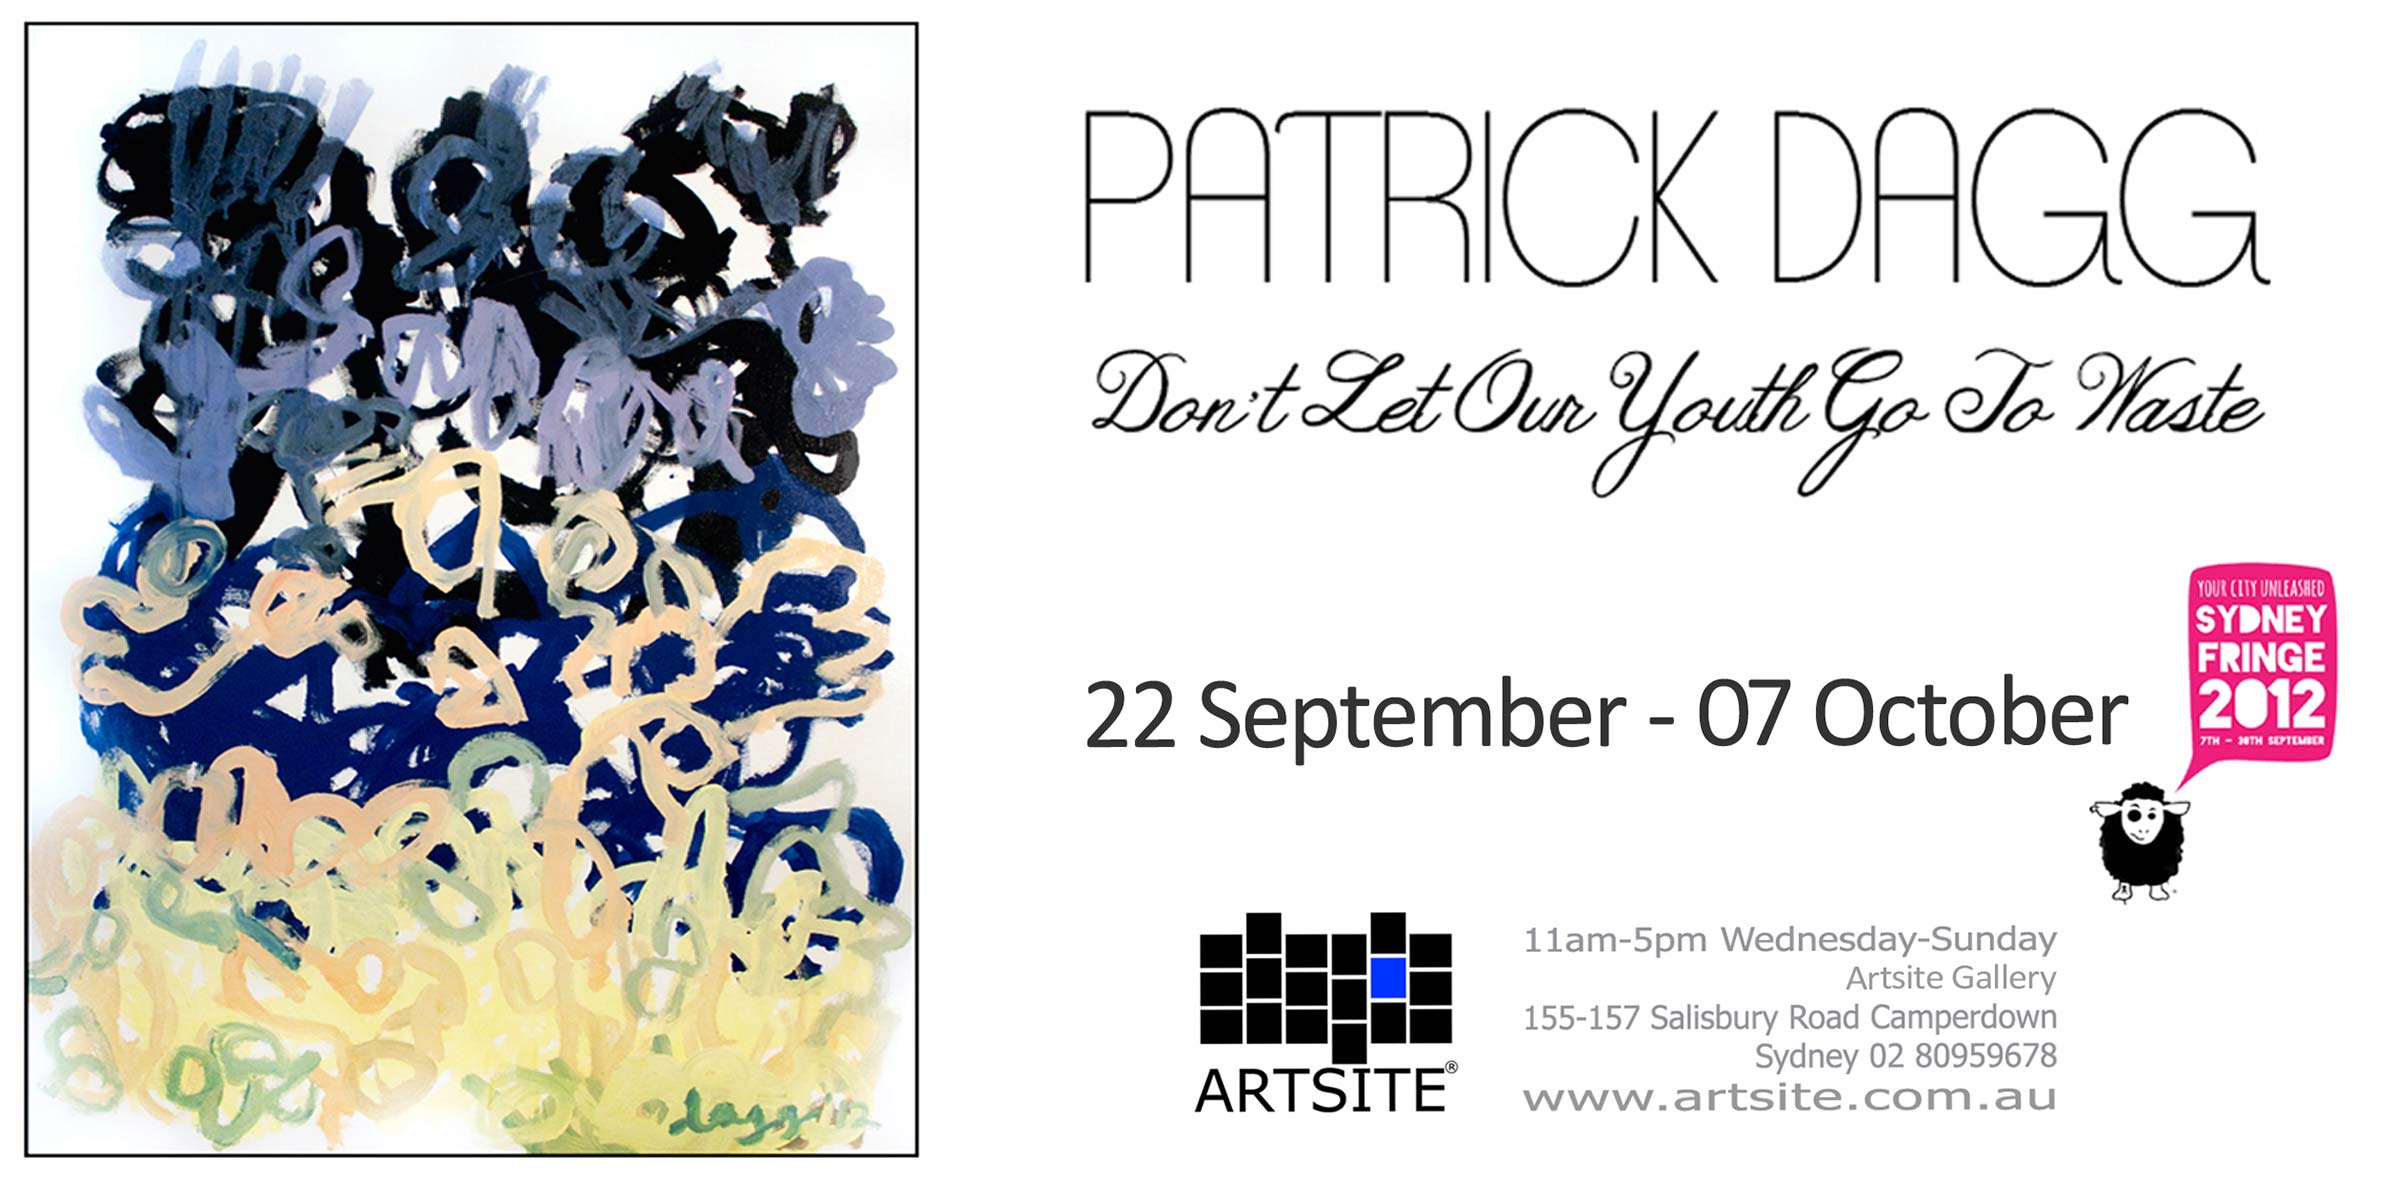 View Exhibition at Artsite Gallery. 22 September-07 October 2012: Patrick Dagg - Don't Let Our Youth Go To Waste